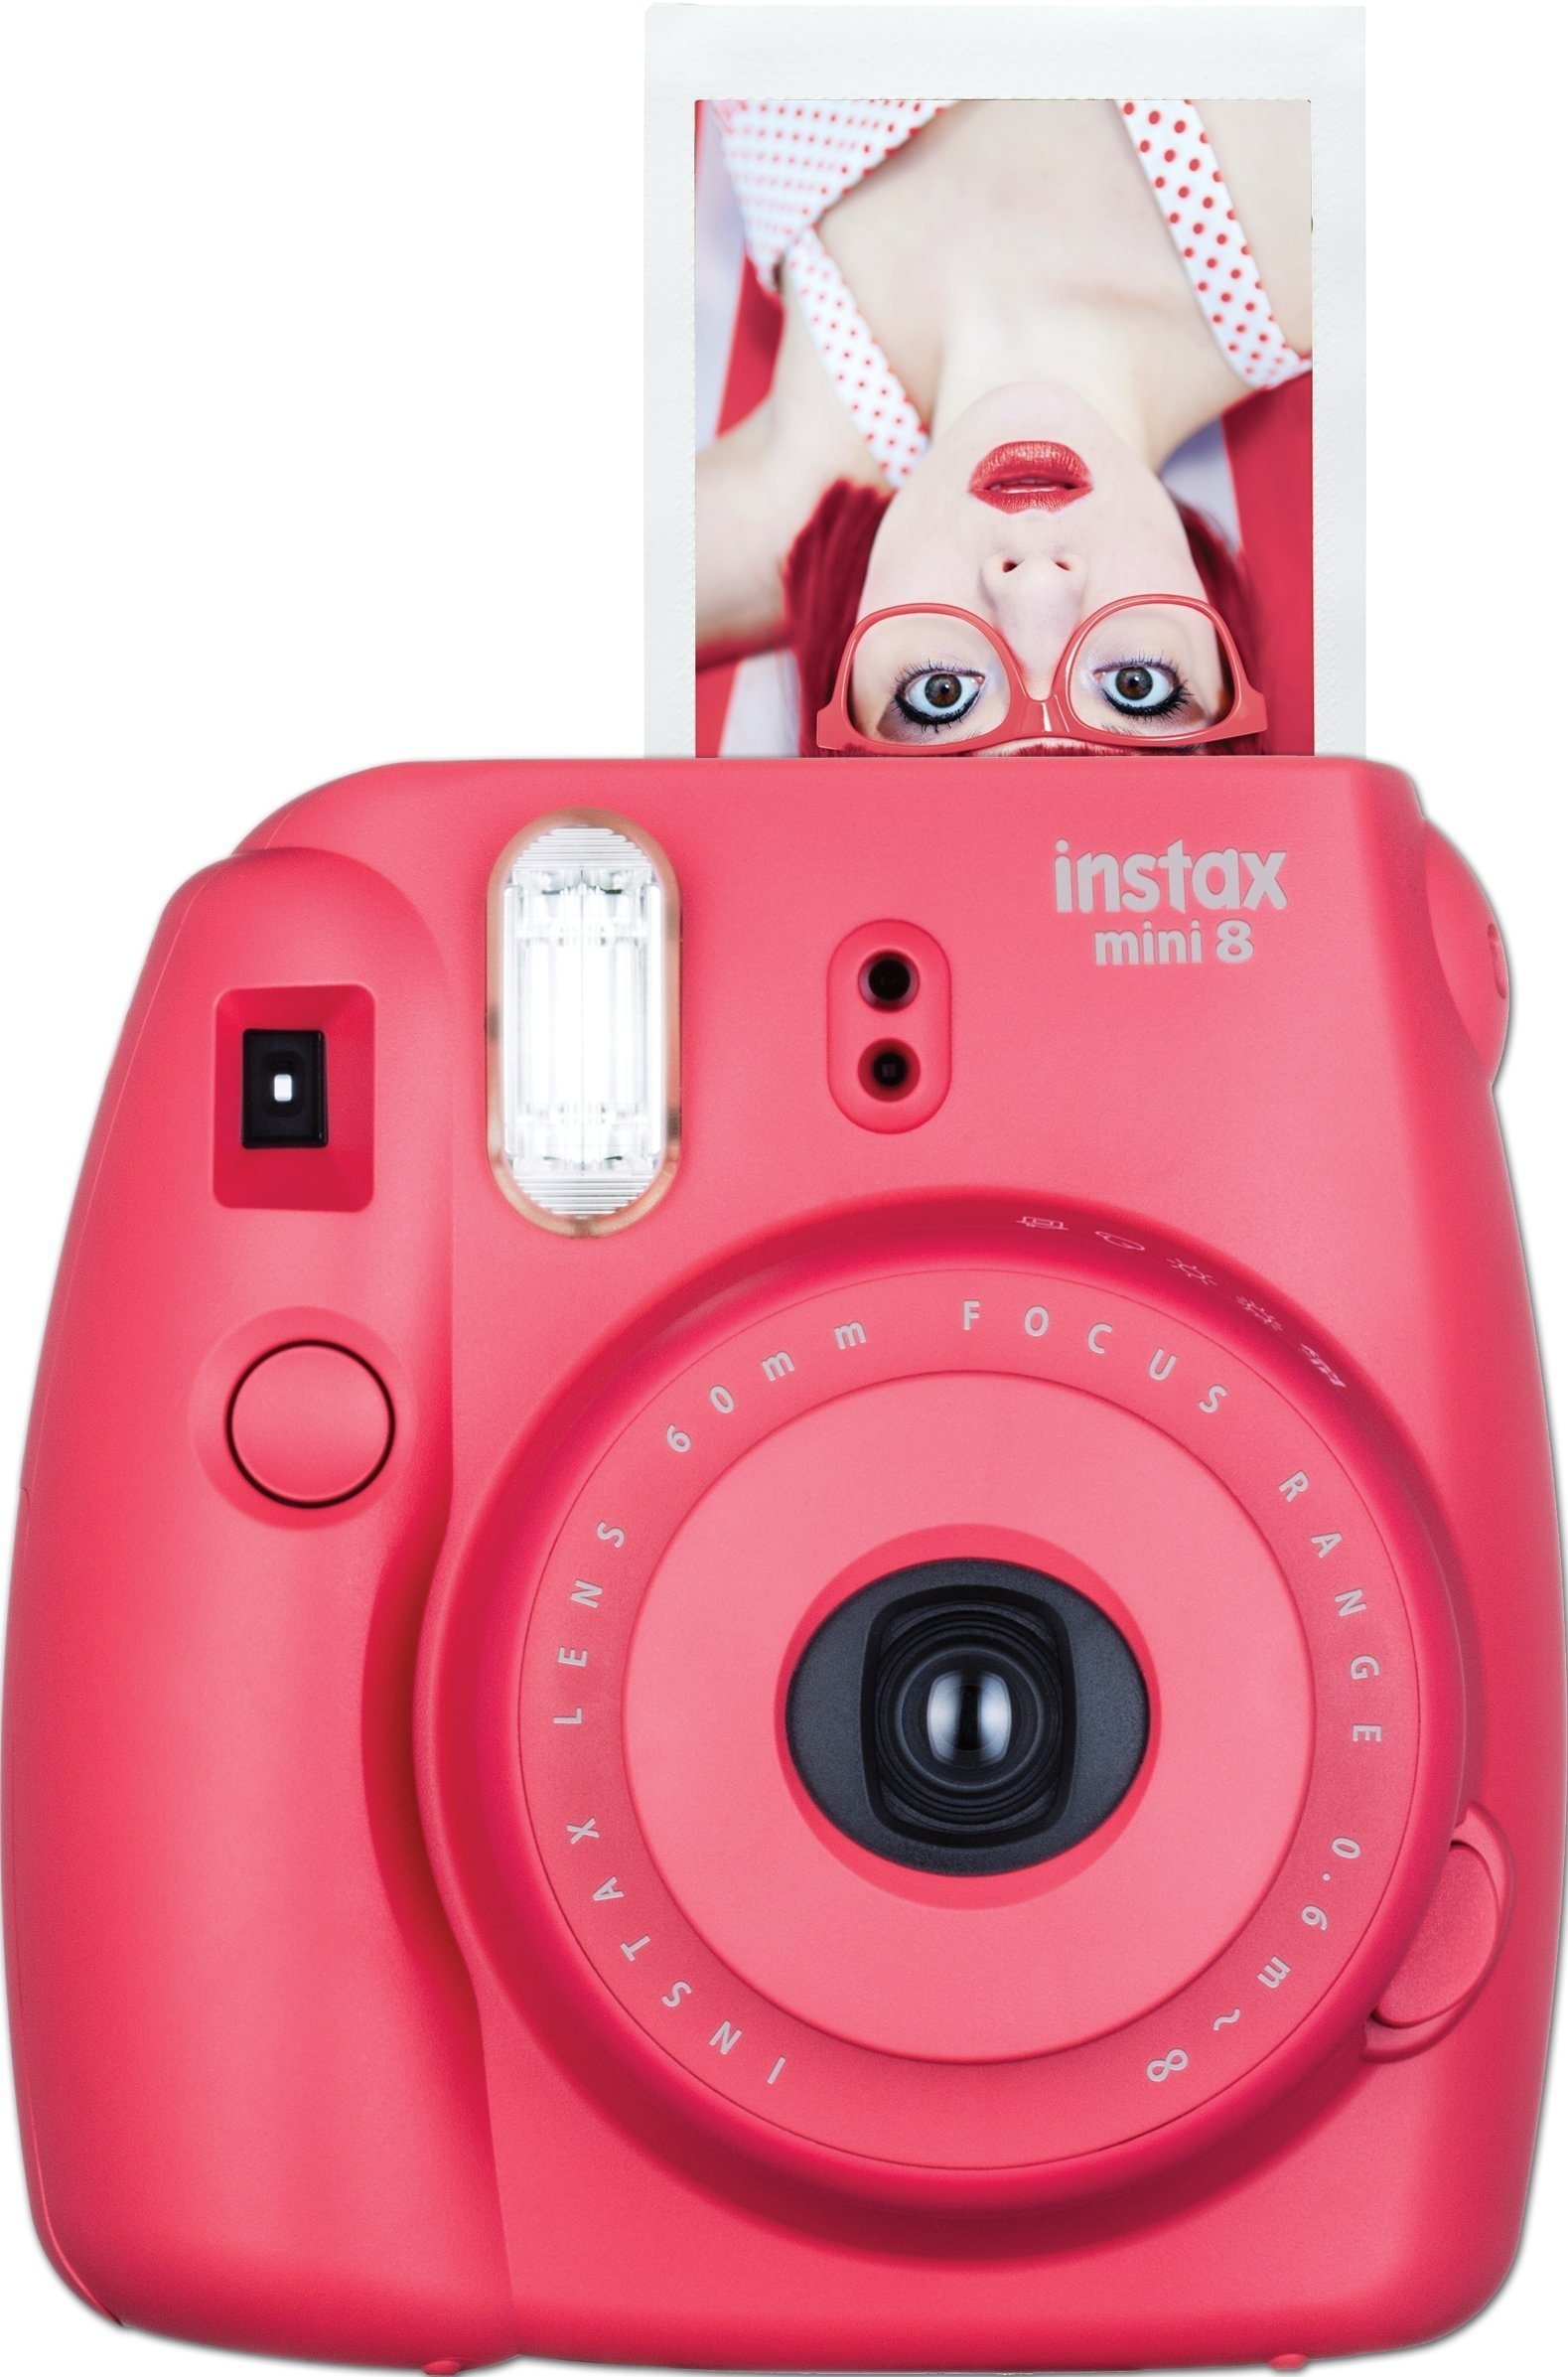 10 Nice Gift Ideas For 13 Year Old Daughter amazon fujifilm instax mini 8 instant film camera pink 2021